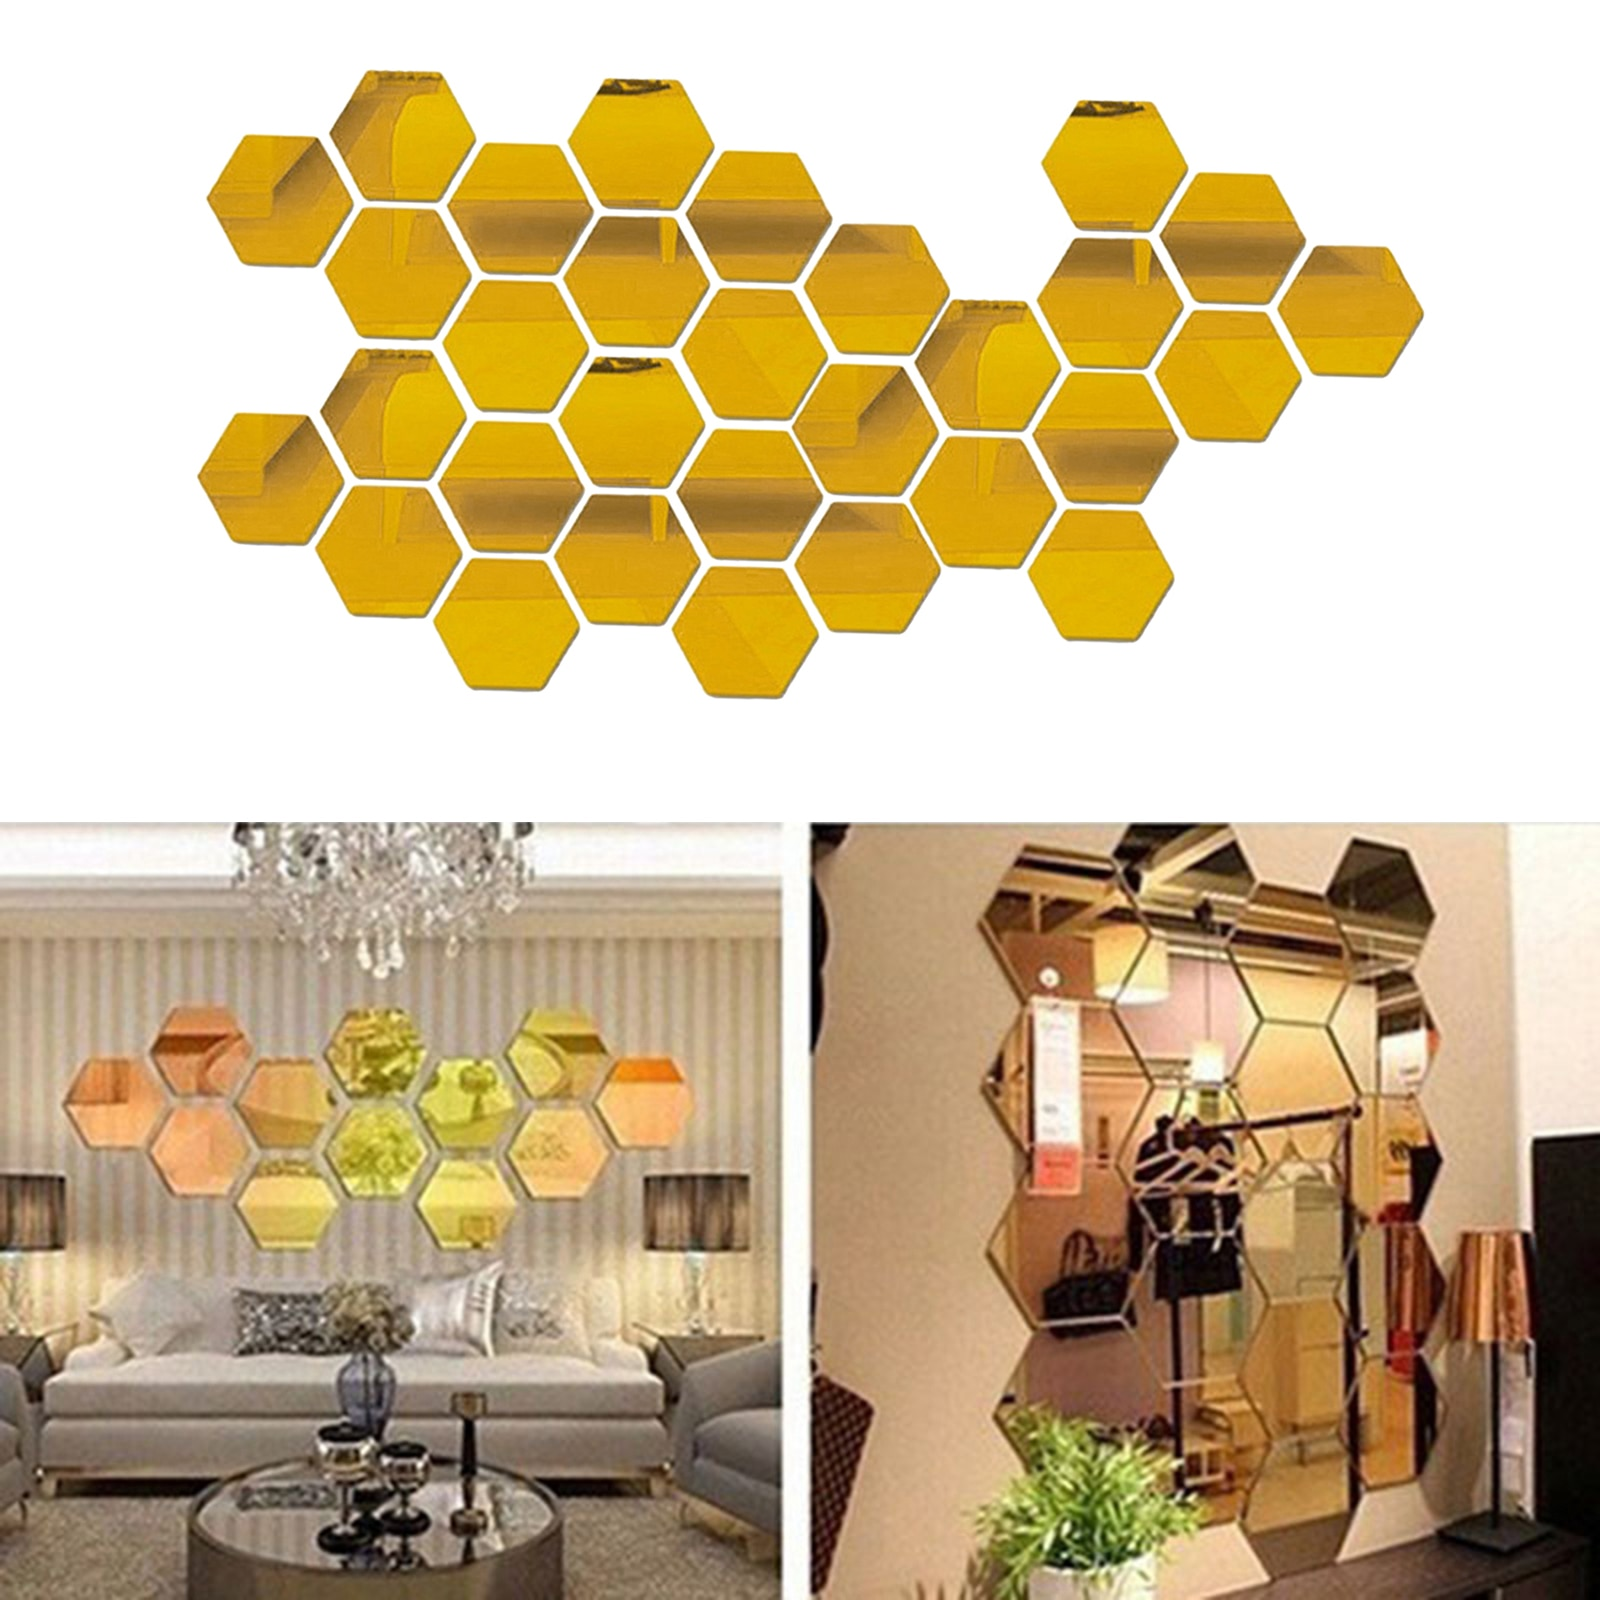 100 Self Adhesive Mirror Tiles Kitchen Wall Decals Stick On Stickers  - buy with discount